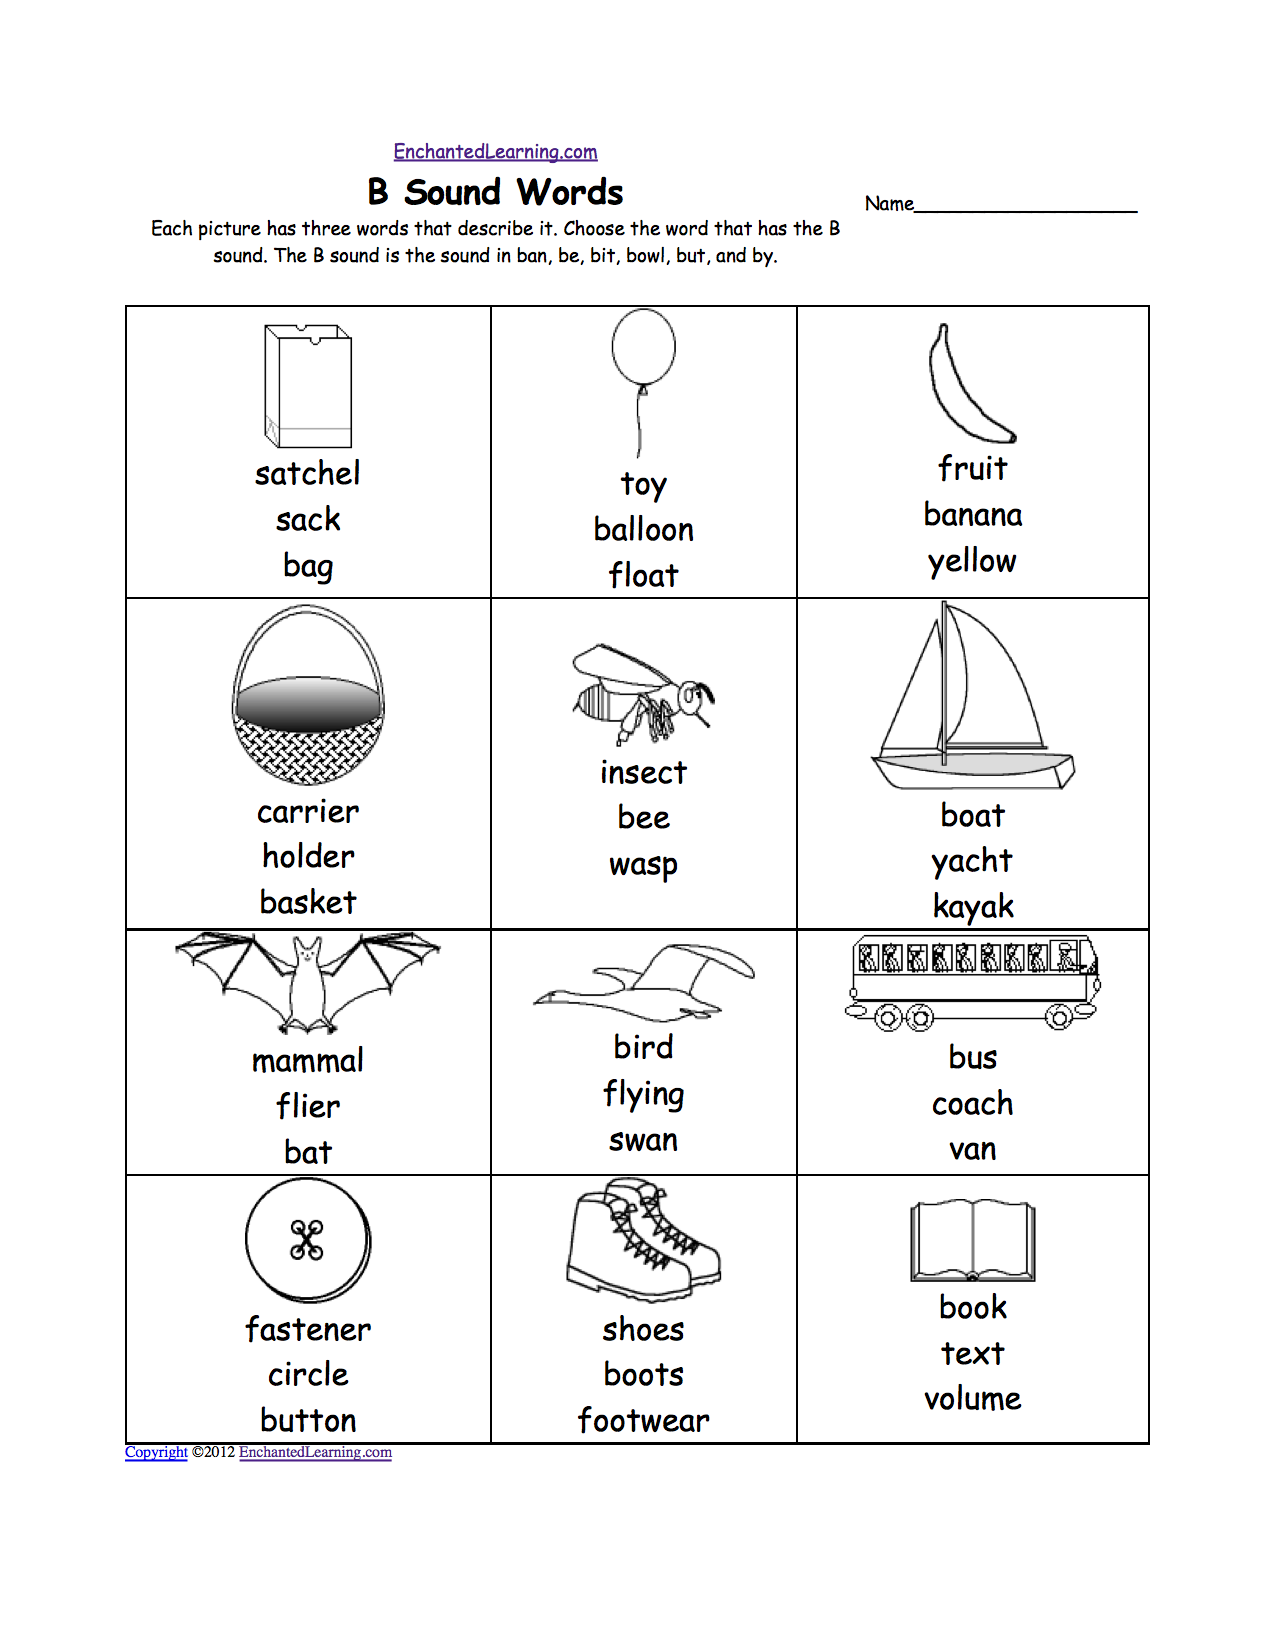 Weirdmailus  Pleasing Phonics Worksheets Multiple Choice Worksheets To Print  With Exciting Quotbquot Sound Phonics Worksheet Multiple Choice Each Picture Has Three Words That Describe It Choose The Word That Has A Quotbquot Sound The Quotbquot Sound Is The Sound  With Adorable Ordering Fractions Worksheet Th Grade Also D Shape Worksheets In Addition Key Stage  History Worksheets And Goodnight Mr Tom Worksheets As Well As Adding Suffixes Worksheet Additionally  Square Worksheets From Enchantedlearningcom With Weirdmailus  Exciting Phonics Worksheets Multiple Choice Worksheets To Print  With Adorable Quotbquot Sound Phonics Worksheet Multiple Choice Each Picture Has Three Words That Describe It Choose The Word That Has A Quotbquot Sound The Quotbquot Sound Is The Sound  And Pleasing Ordering Fractions Worksheet Th Grade Also D Shape Worksheets In Addition Key Stage  History Worksheets From Enchantedlearningcom